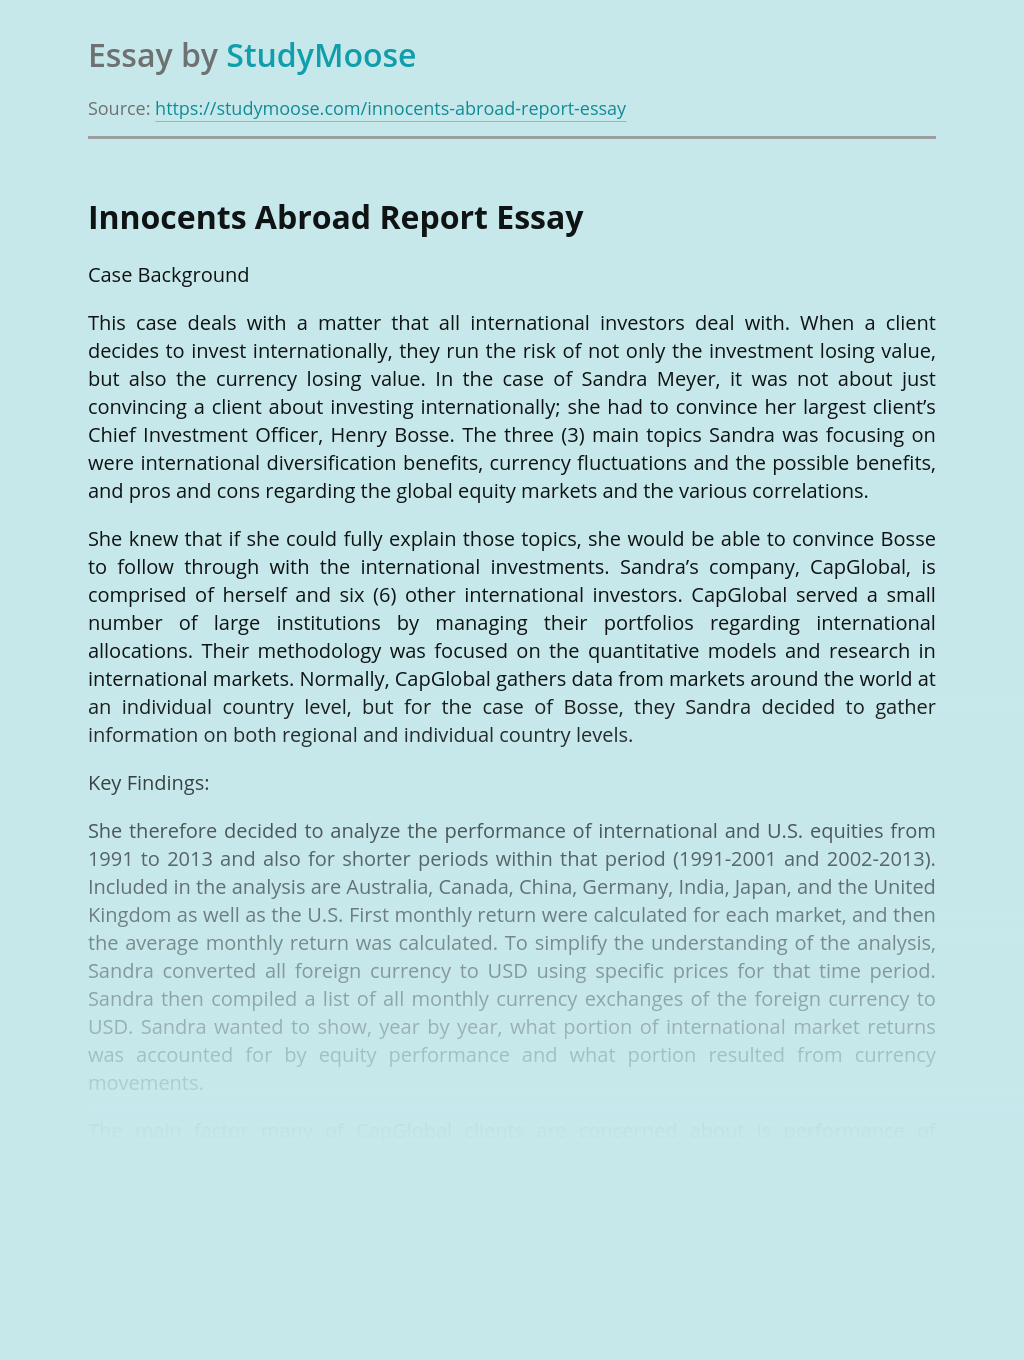 Innocents Abroad Report